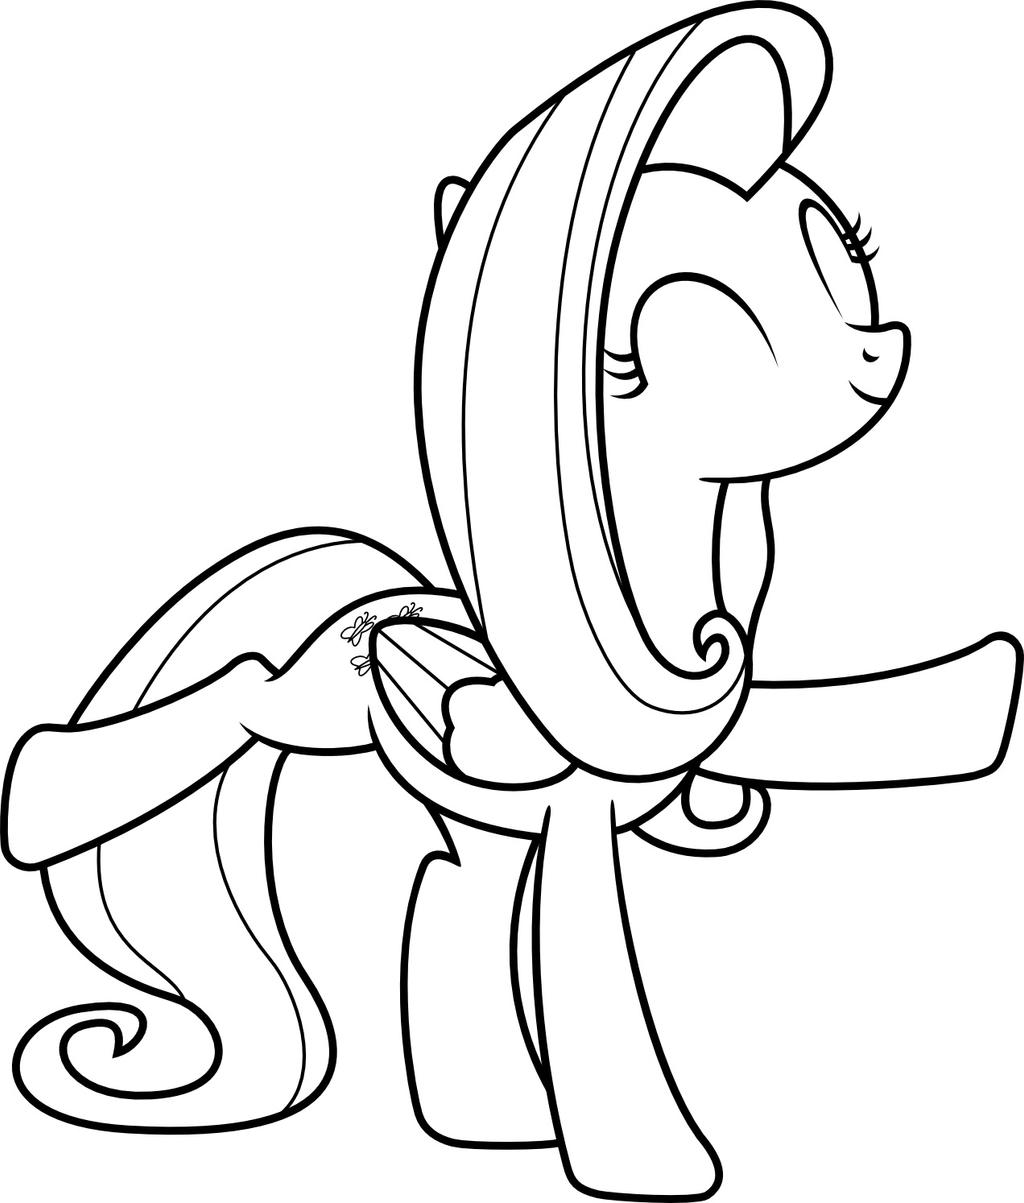 mlp coloring page flutterdance by scienceisanart mlp coloring page flutterdance by scienceisanart - Mlp Coloring Pages